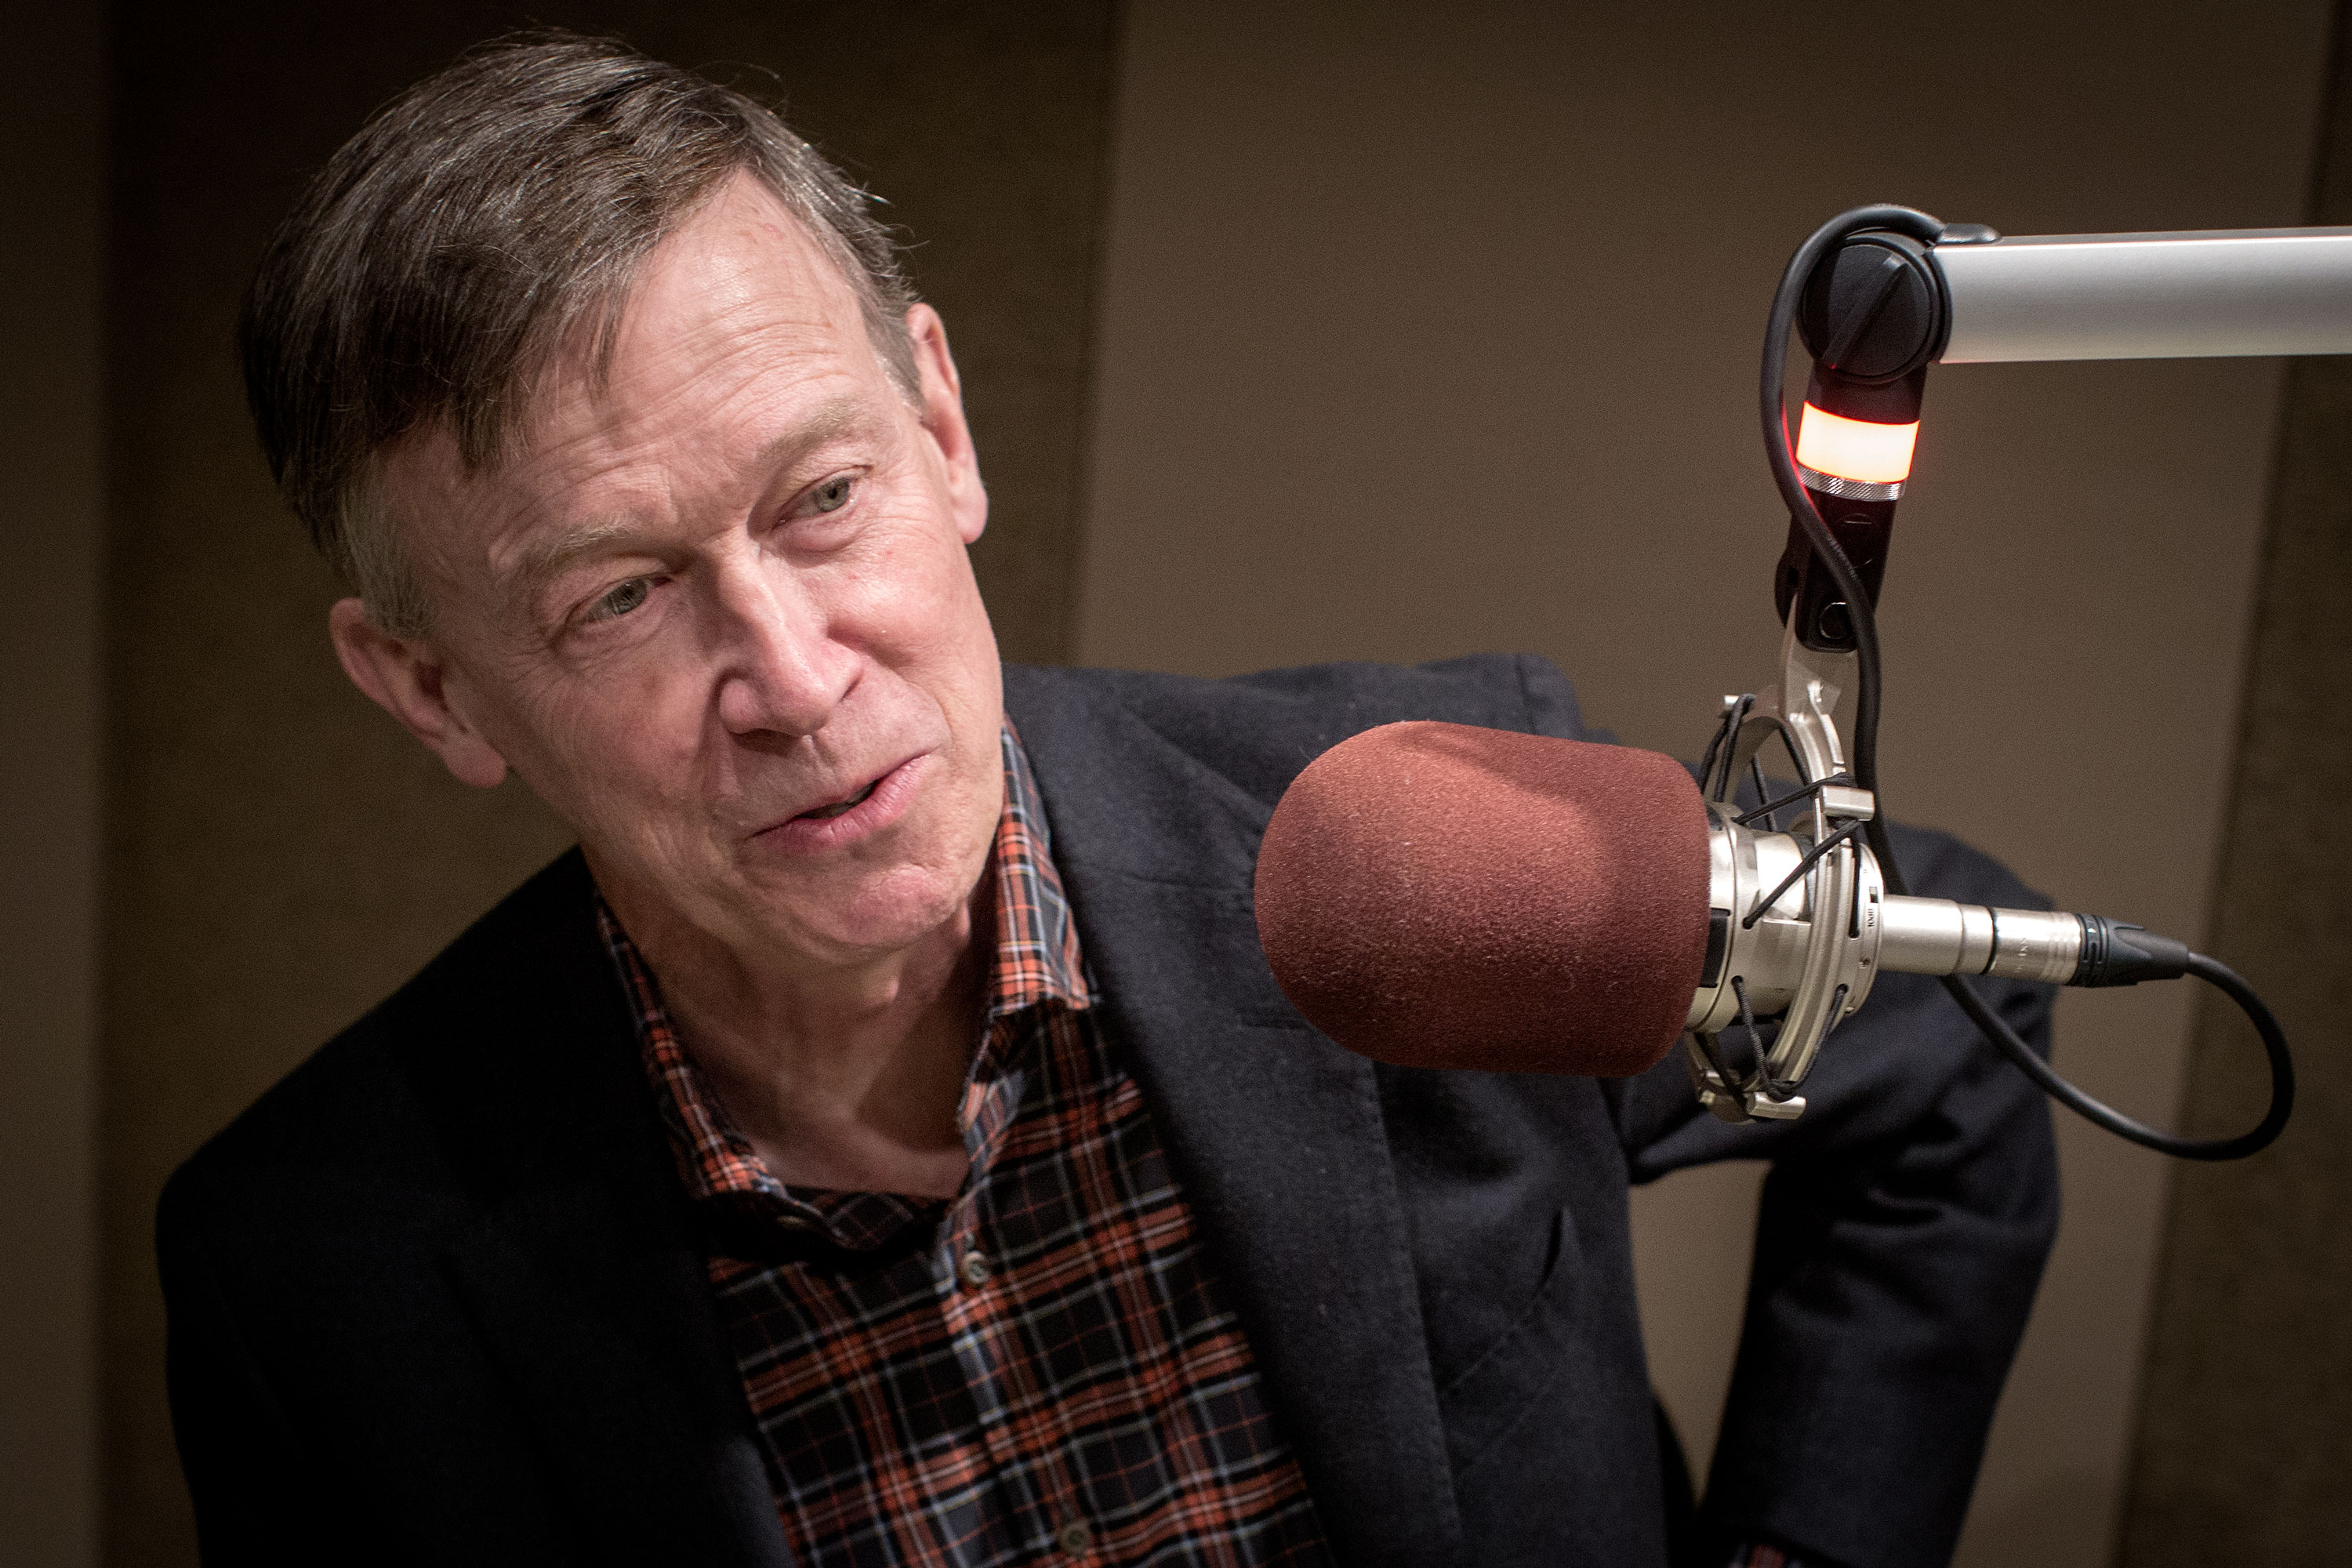 Presidential candidate and former Colorado Gov. John Hickenlooper at the CPRstudios Monday April 22, 2019.